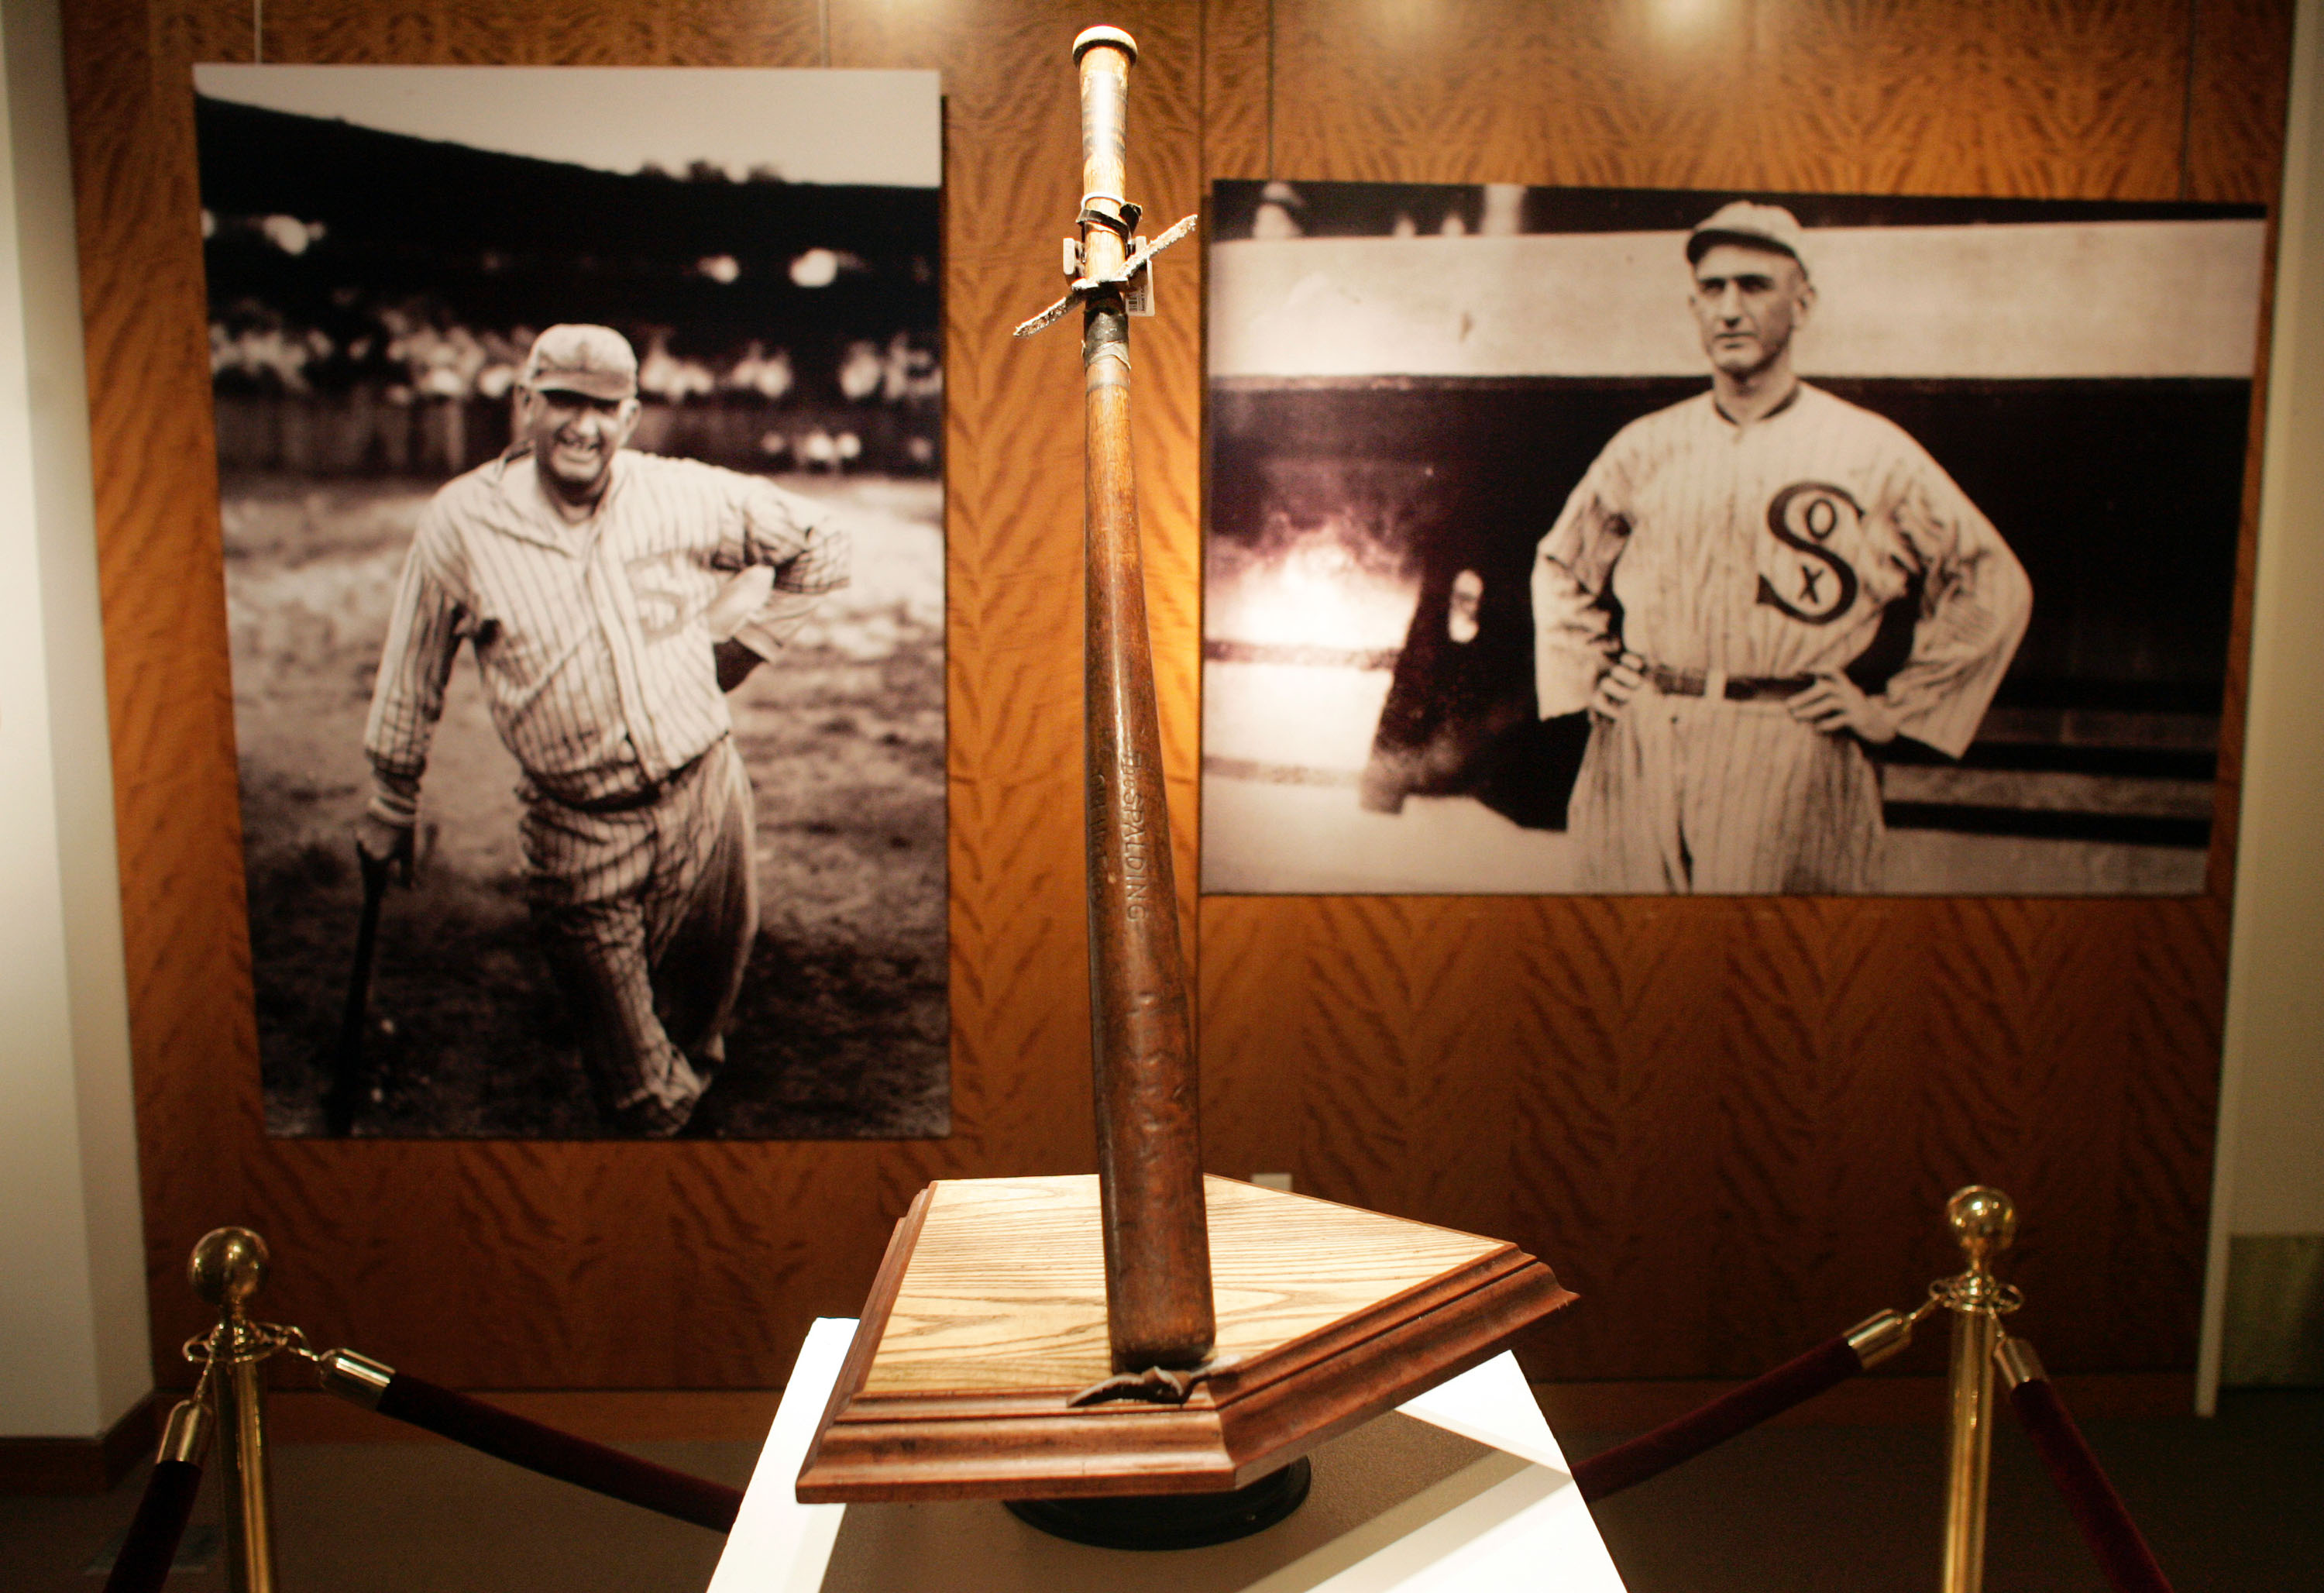 NEW YORK - DECEMBER 5:  'Shoeless' Joe Jackson's bat stands on display during an auction preview at Sotheby's December 5, 2005 in New York City. The bat, called 'Black Betsy,' will be auctioned December 10 and was last purchased at a 2001 auction for $577